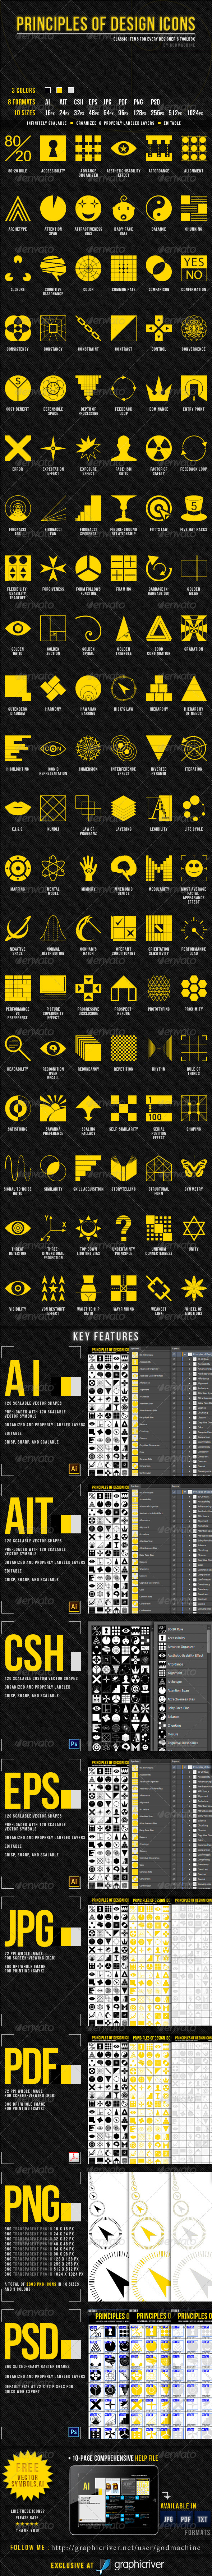 GraphicRiver Principles of Design Icons 3305231